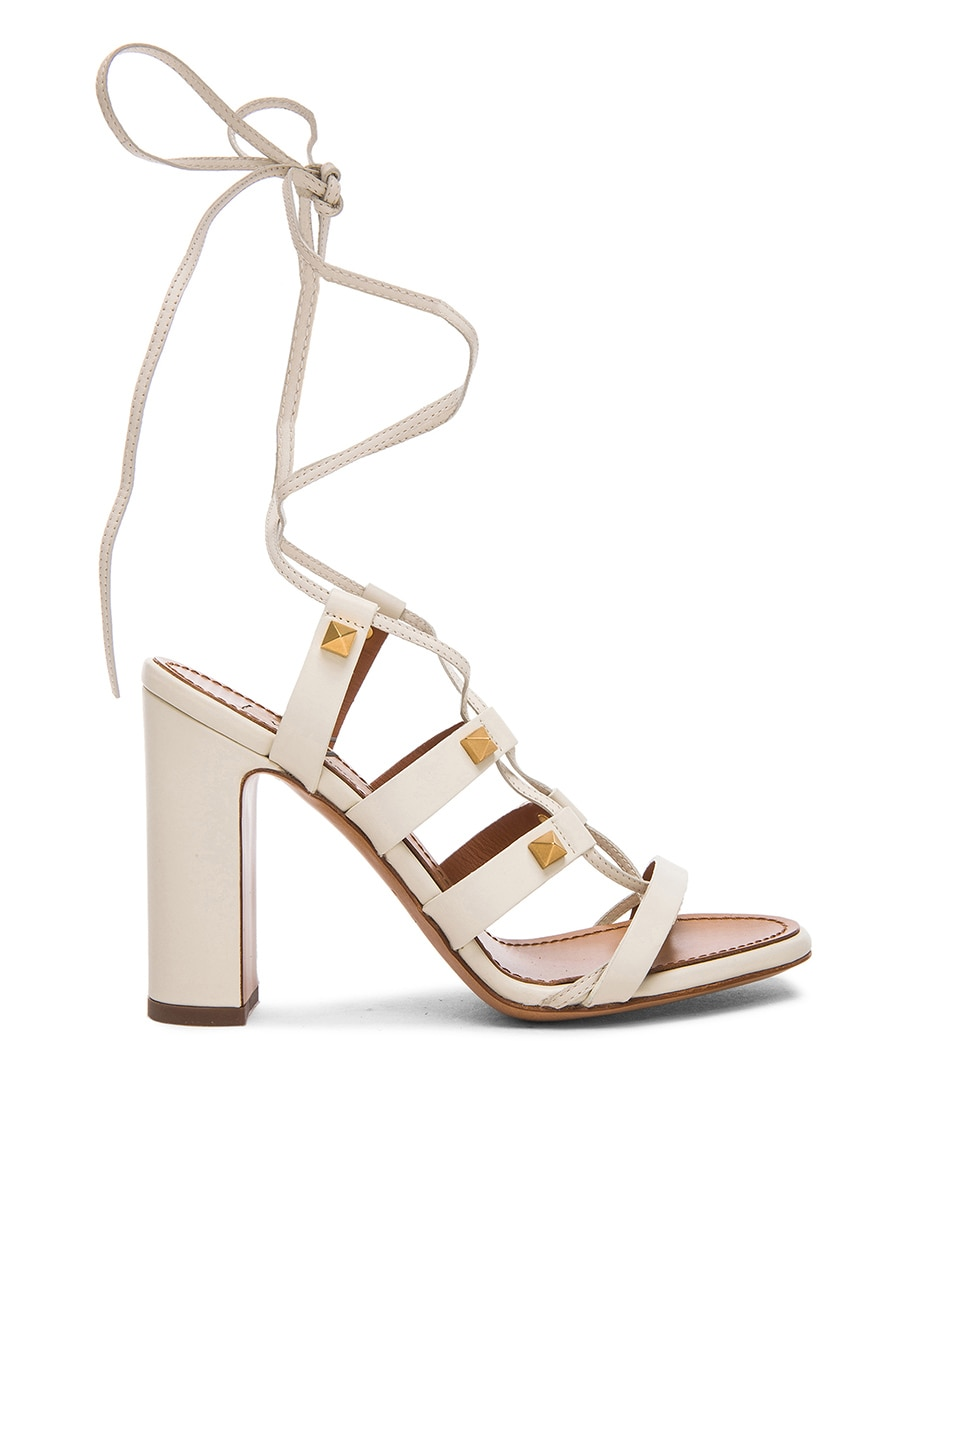 Image 1 of Valentino Rockstud Leather Gladiator Heels T.100 in Light Ivory